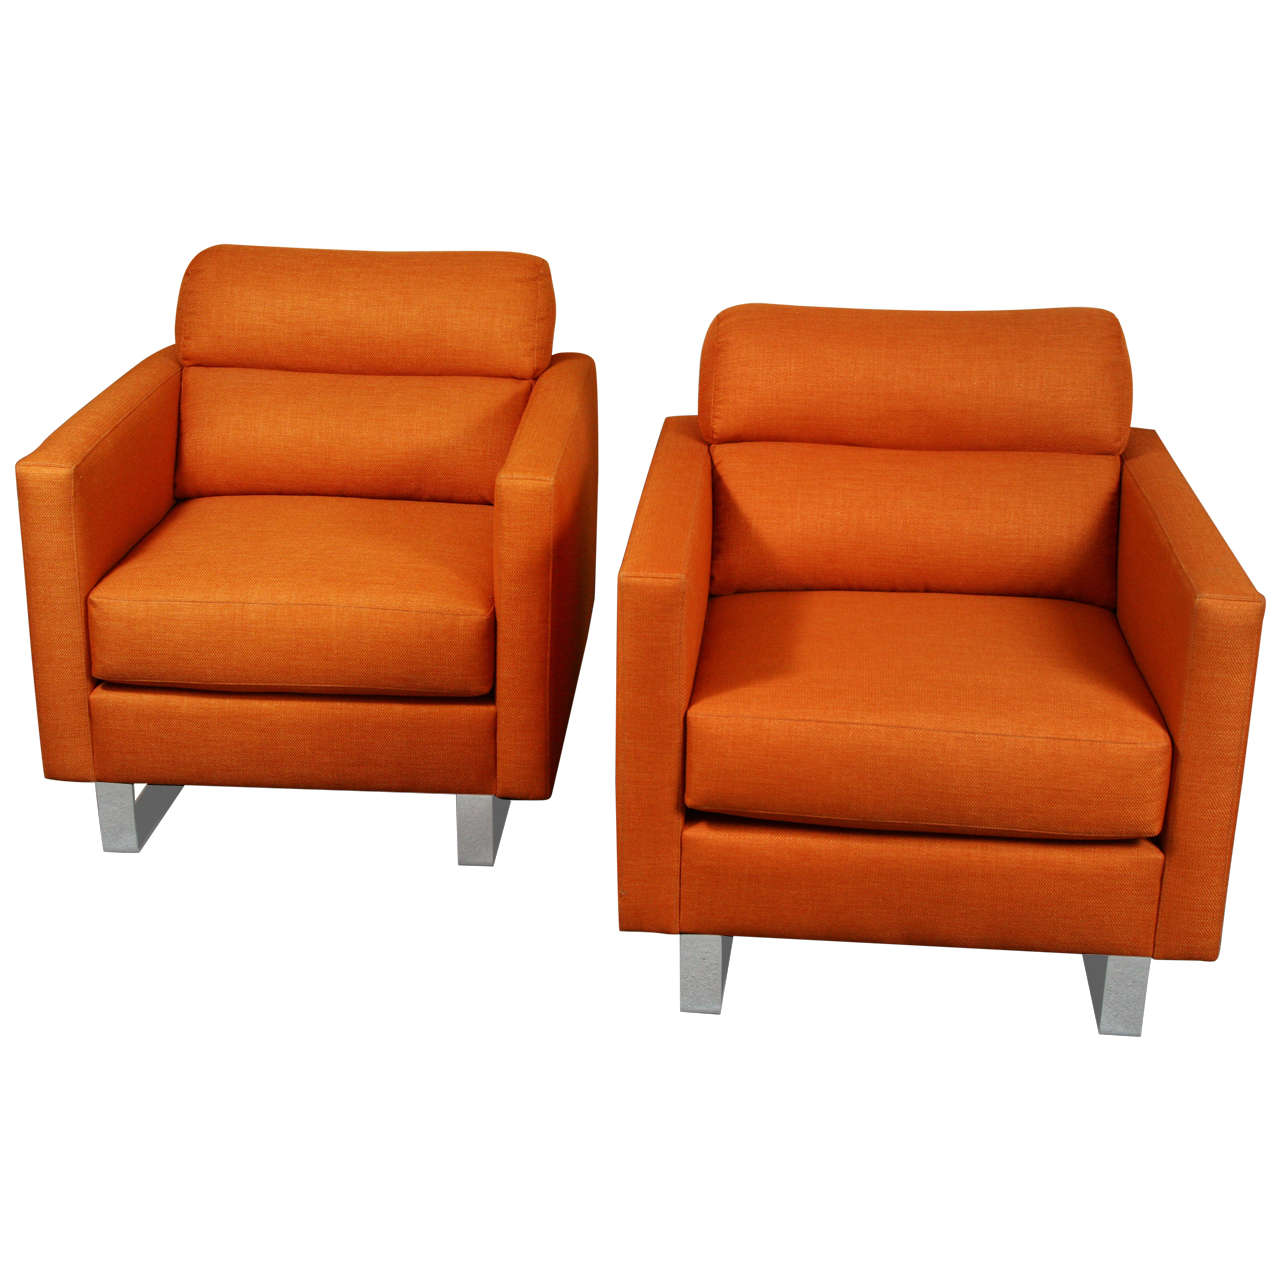 Pair Of Stylish Modernist Club Chairs Upholstered In A